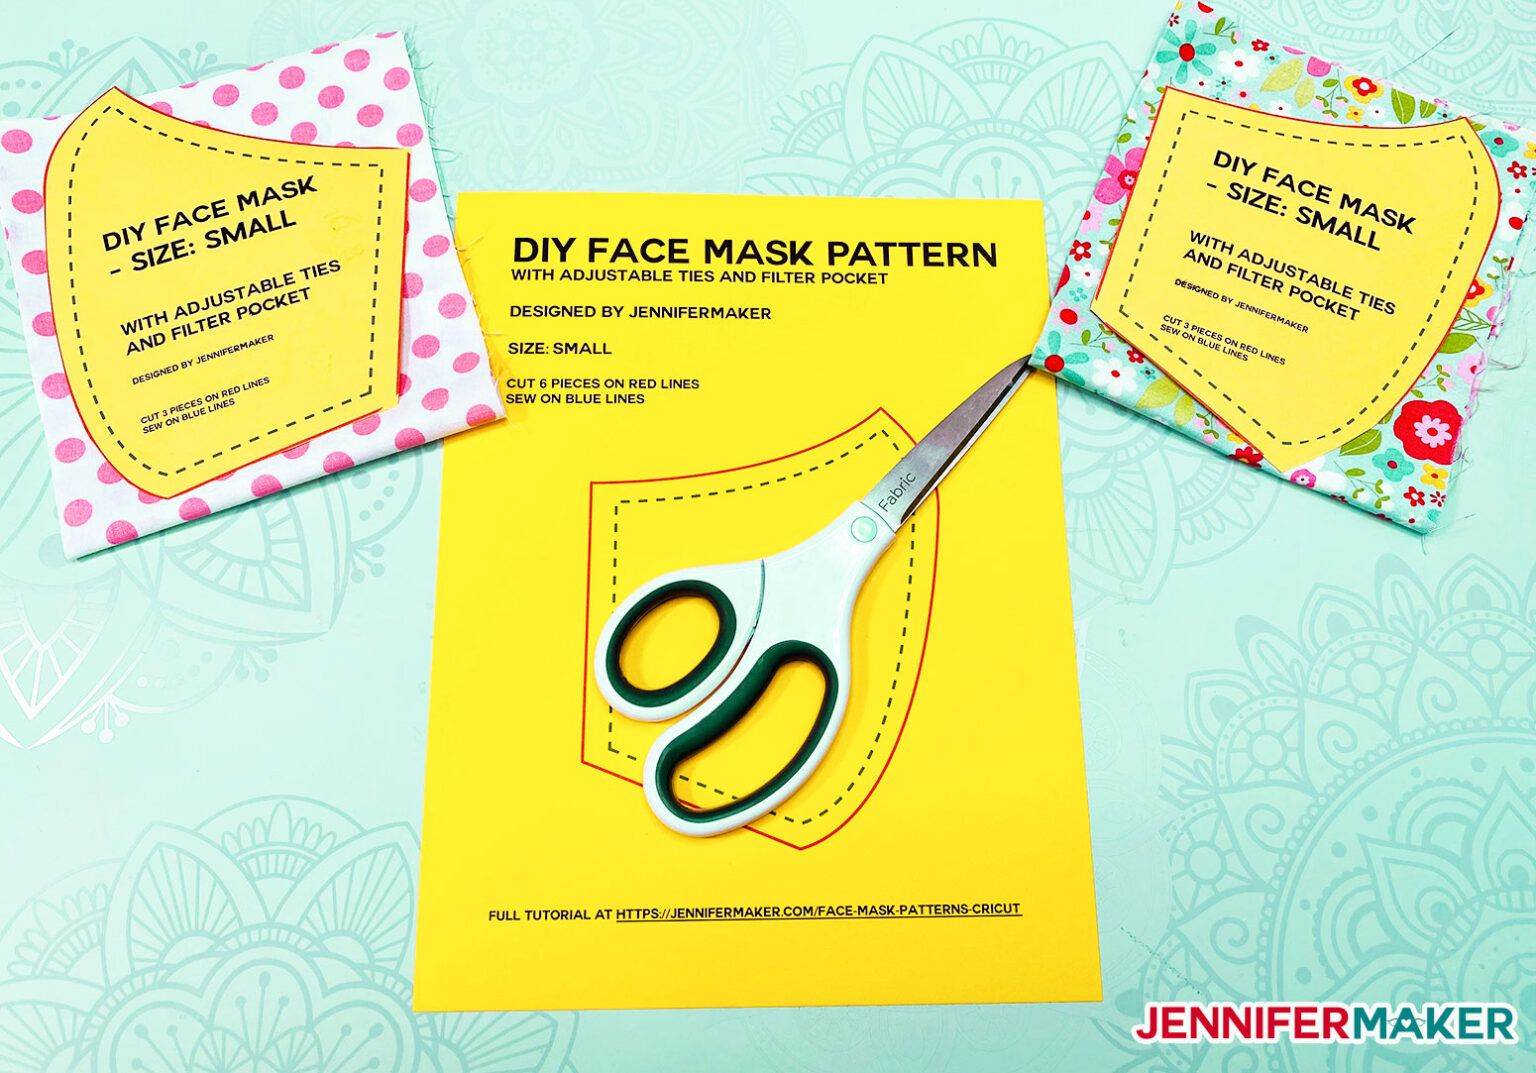 Diy Face Mask Patterns Filter Pocket Adjustable Ties Diy